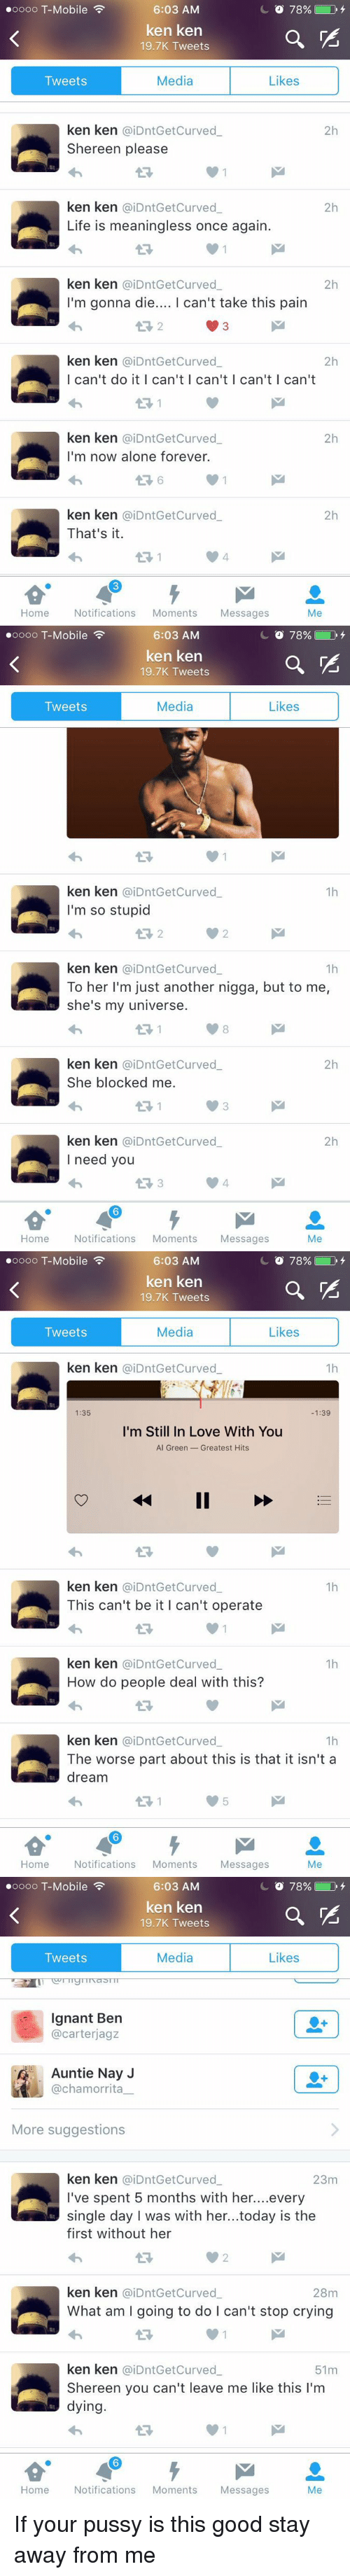 singles day: 6:03 AM  O 78% D  oooo T-Mobile  ken ken  19.7K Tweets  Media  Likes  Tweets  ken ken aiDntGetCurved  2h  Shereen please  ken ken  aiDntGetCurved  2h  Life is meaningless once again.  ken ken aiDntGet Curved  2h  I'm gonna die  I can't take this pain  ken ken (aiDntGet Curved  2h  I can't do it I can't I can't I can't l can't  ken ken aiDntGetCurved  2h  I'm now alone forever.  ken ken aiDntGet Curved  2h  That's it.  Home  Notifications  Moments  Messages  Me   6:03 AM  O 78% D  oooo T-Mobile  ken ken  19.7K Tweets  Media  Likes  Tweets  ken ken aiDntGetCurved  1h  I'm so stupid  ken ken aiDntGet Curved  1h  To her I'm just another nigga, but to me,  she's my universe.  ken ken  aiDntGet Curved  2h  She blocked me.  ken ken aiDntGetCurved  2h  I need you  t 3  Home  Notifications  Moments  Messages  Me   6:03 AM  O 78% D  oooo T-Mobile  ken ken  19.7K Tweets  Media  Likes  Tweets  ken ken aiDntGet Curved  1h  1:35  1:39  I'm Still In Love With You  Al Green Greatest Hits  ken ken aiDntGet Curved  1h  This can't be it I can't operate  ken ken  CaiDntGet Curved  1h  How do people deal with this?  ken ken  aiDntGet Curved  1h  The worse part about this is that it isn't a  dream  Home  Notifications  Moments  Messages  Me   O 78%  D  oooo T-Mobile  6:03 AM  ken ken  19.7K Tweets  Media  Likes  Tweets  Ignant Ben  @carterjagz  Auntie Nay J  @chamorrita  More suggestions  ken ken aiDntGetCurved  23m  ve spent 5 months with her  every  single day I was with her...today is the  first without her  ken ken  aiDntGet curved  28m  What am I going to do l can't stop crying  ken ken aiDntGetCurved  51m  Shereen you can't leave me like this I'm  dying.  Home  Notifications  Moments  Messages  Me If your pussy is this good stay away from me